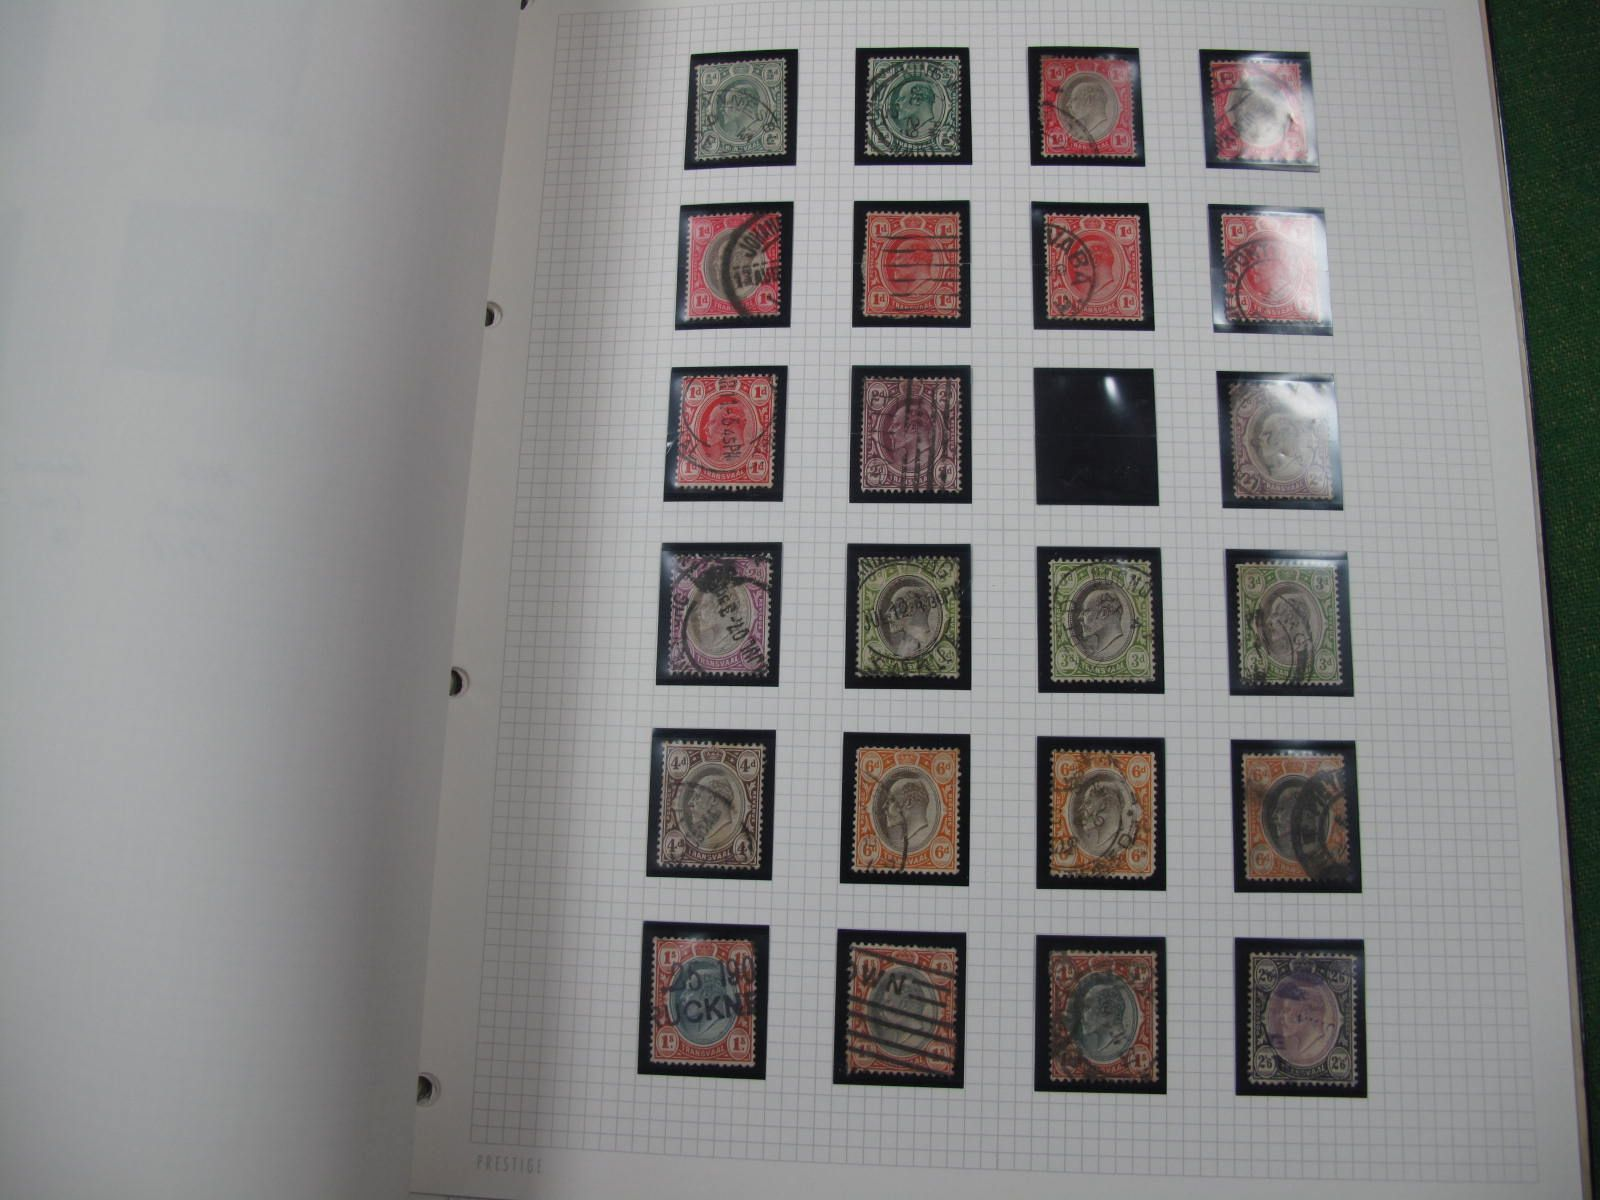 A Commonwealth Collection of Stamps From Southern Africa, including Union of South Africa from